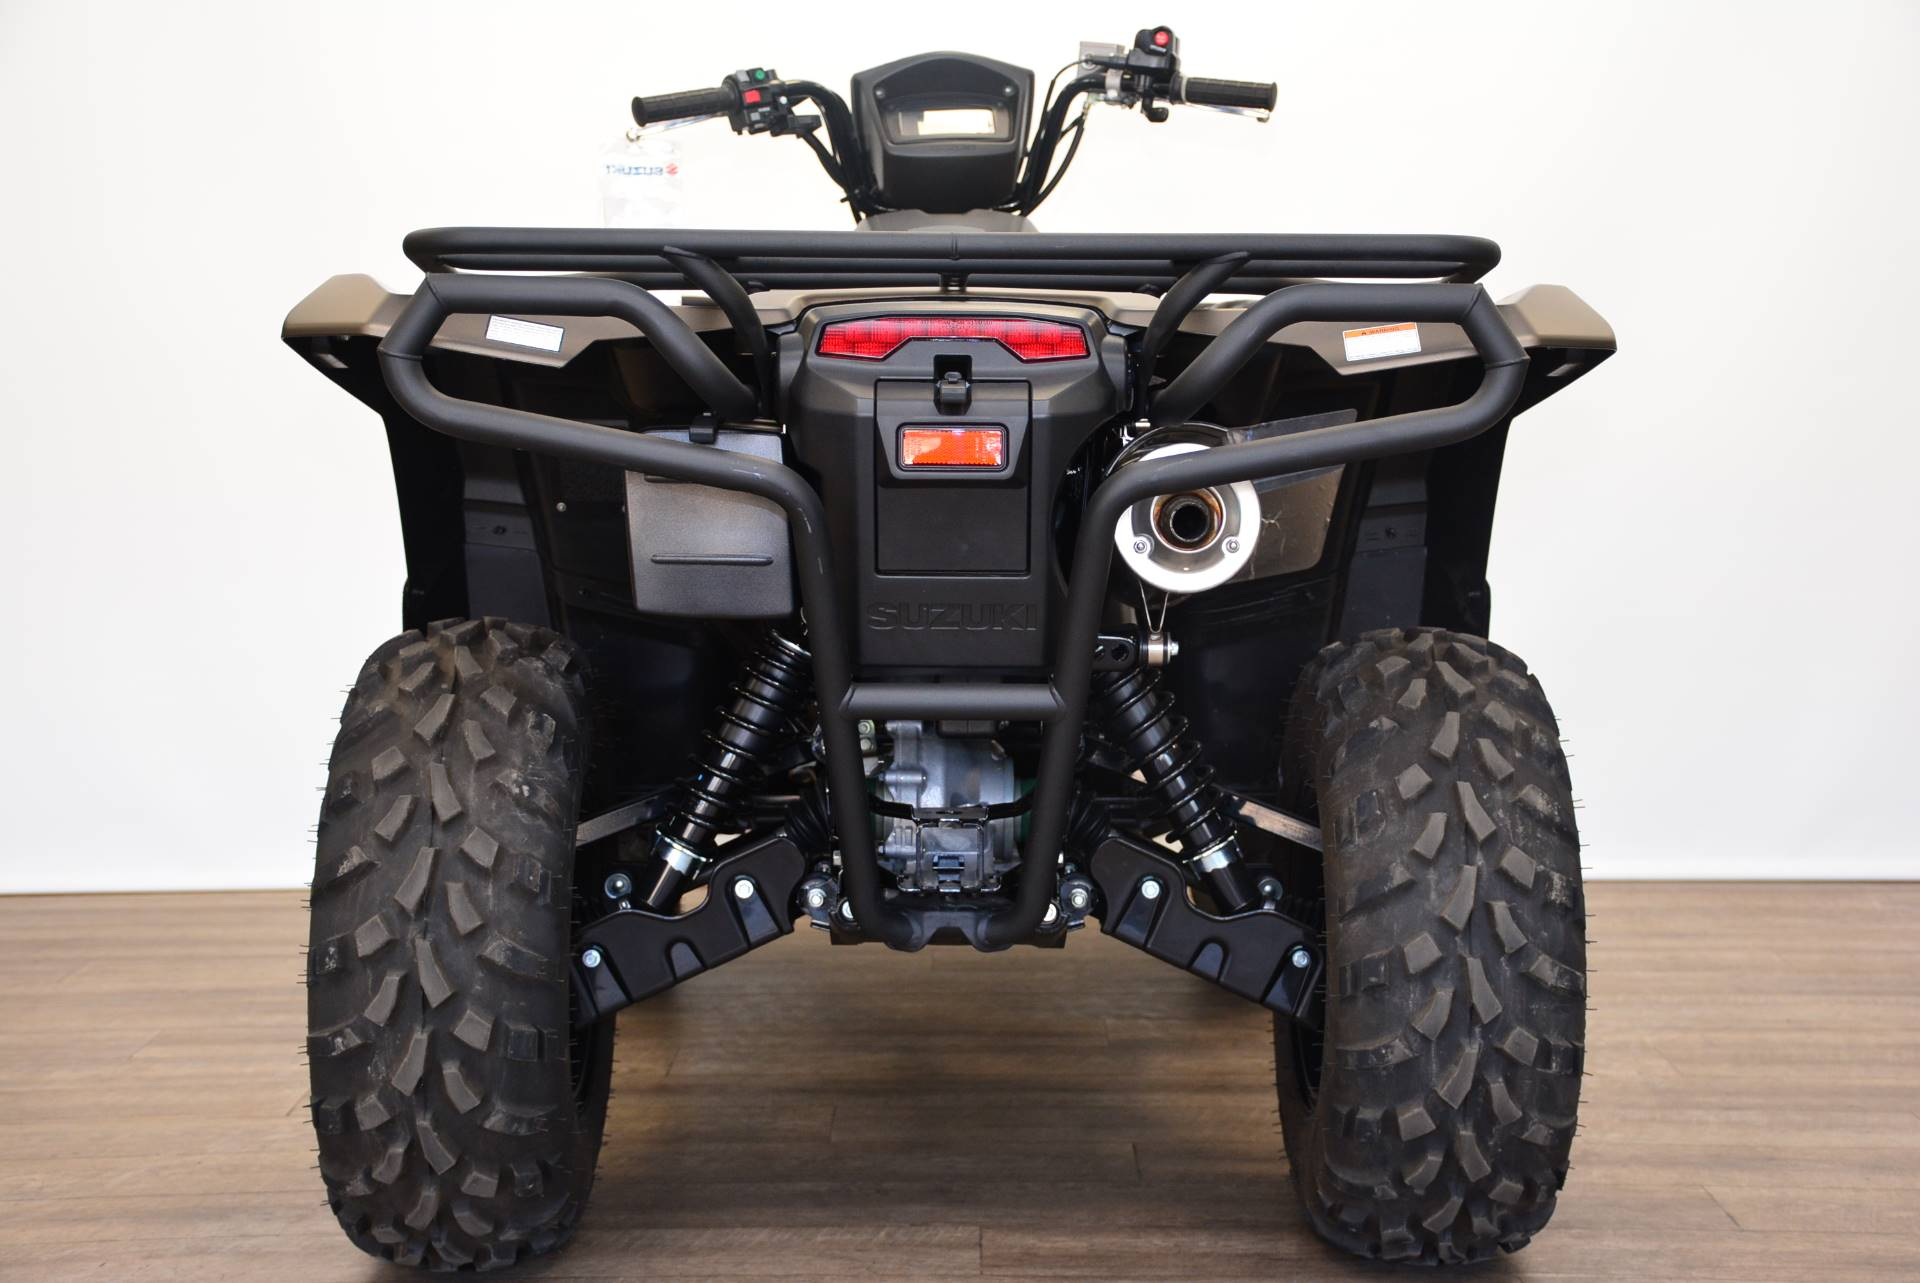 2020 Suzuki KingQuad 500AXi Power Steering SE+ in Bartonsville, Pennsylvania - Photo 4